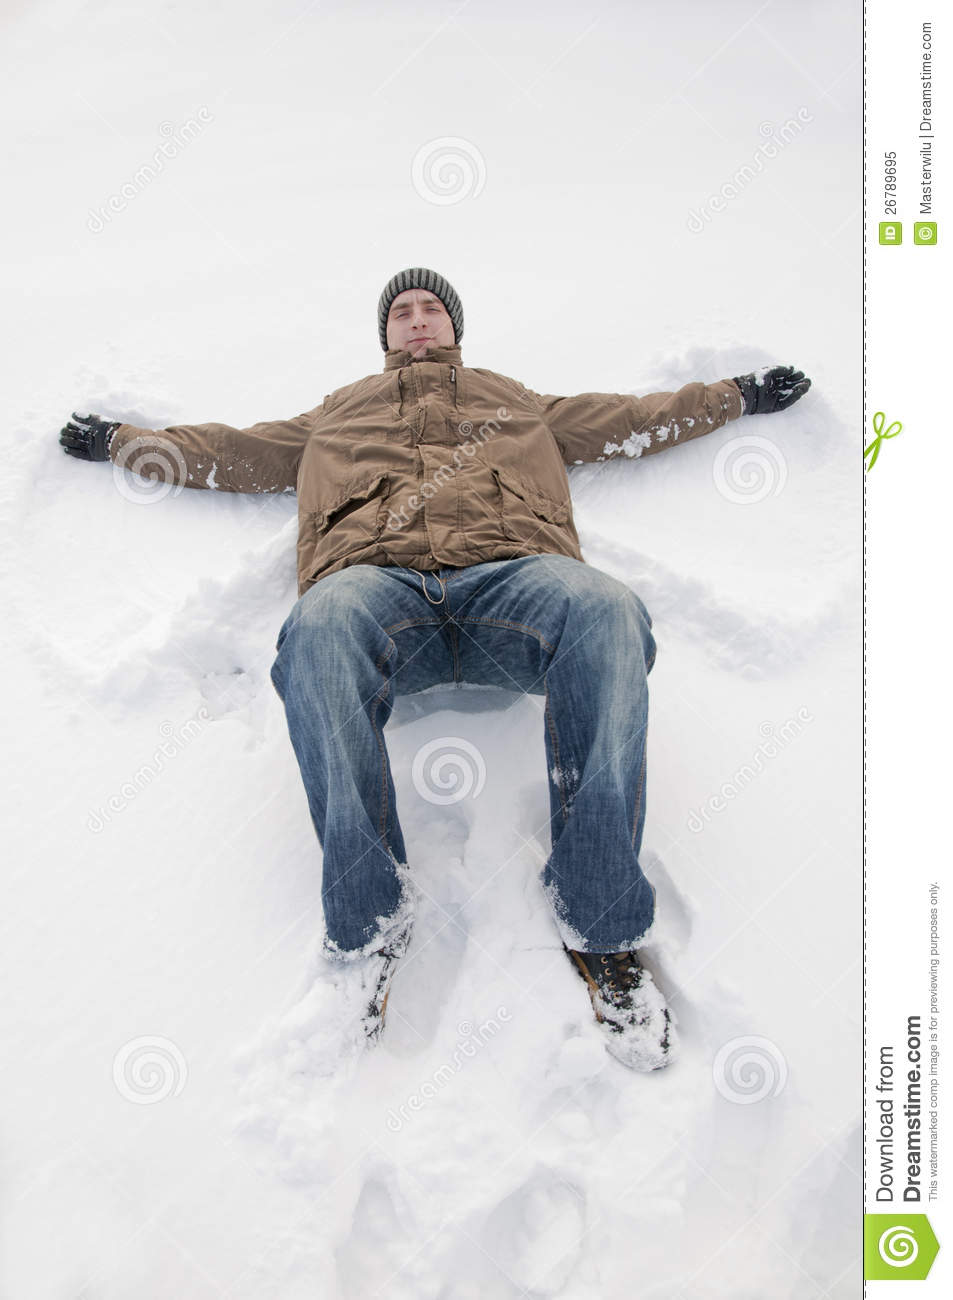 Man Lying On The Snow Stock Image. Image Of Outdoor